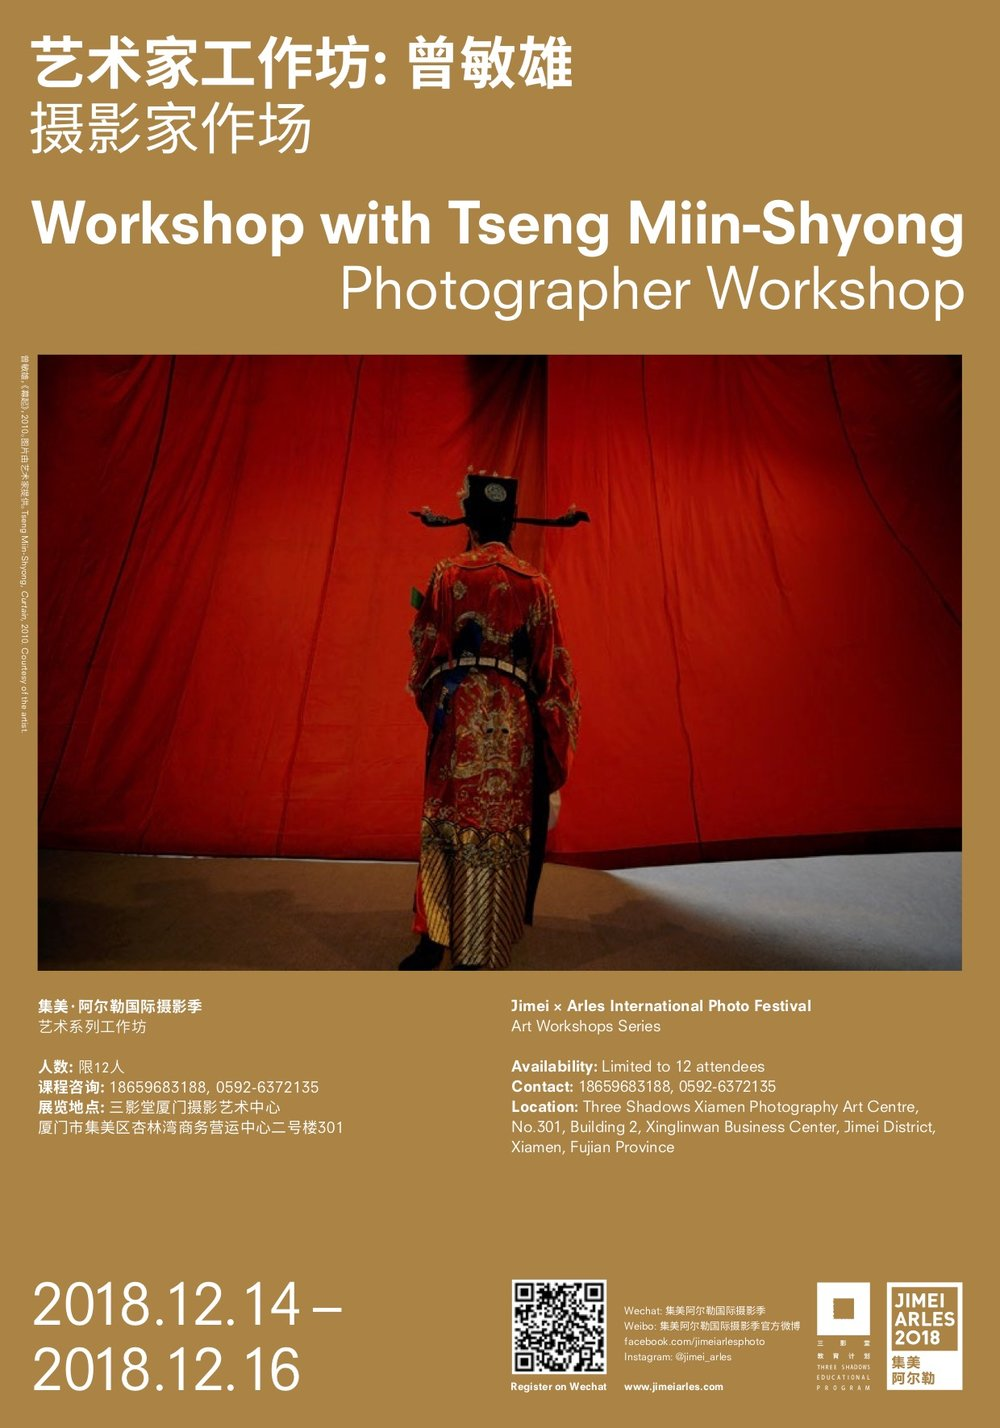 JIMEIARLES_Workshop+Poster_Digital_Xiao_Ribao.jpg